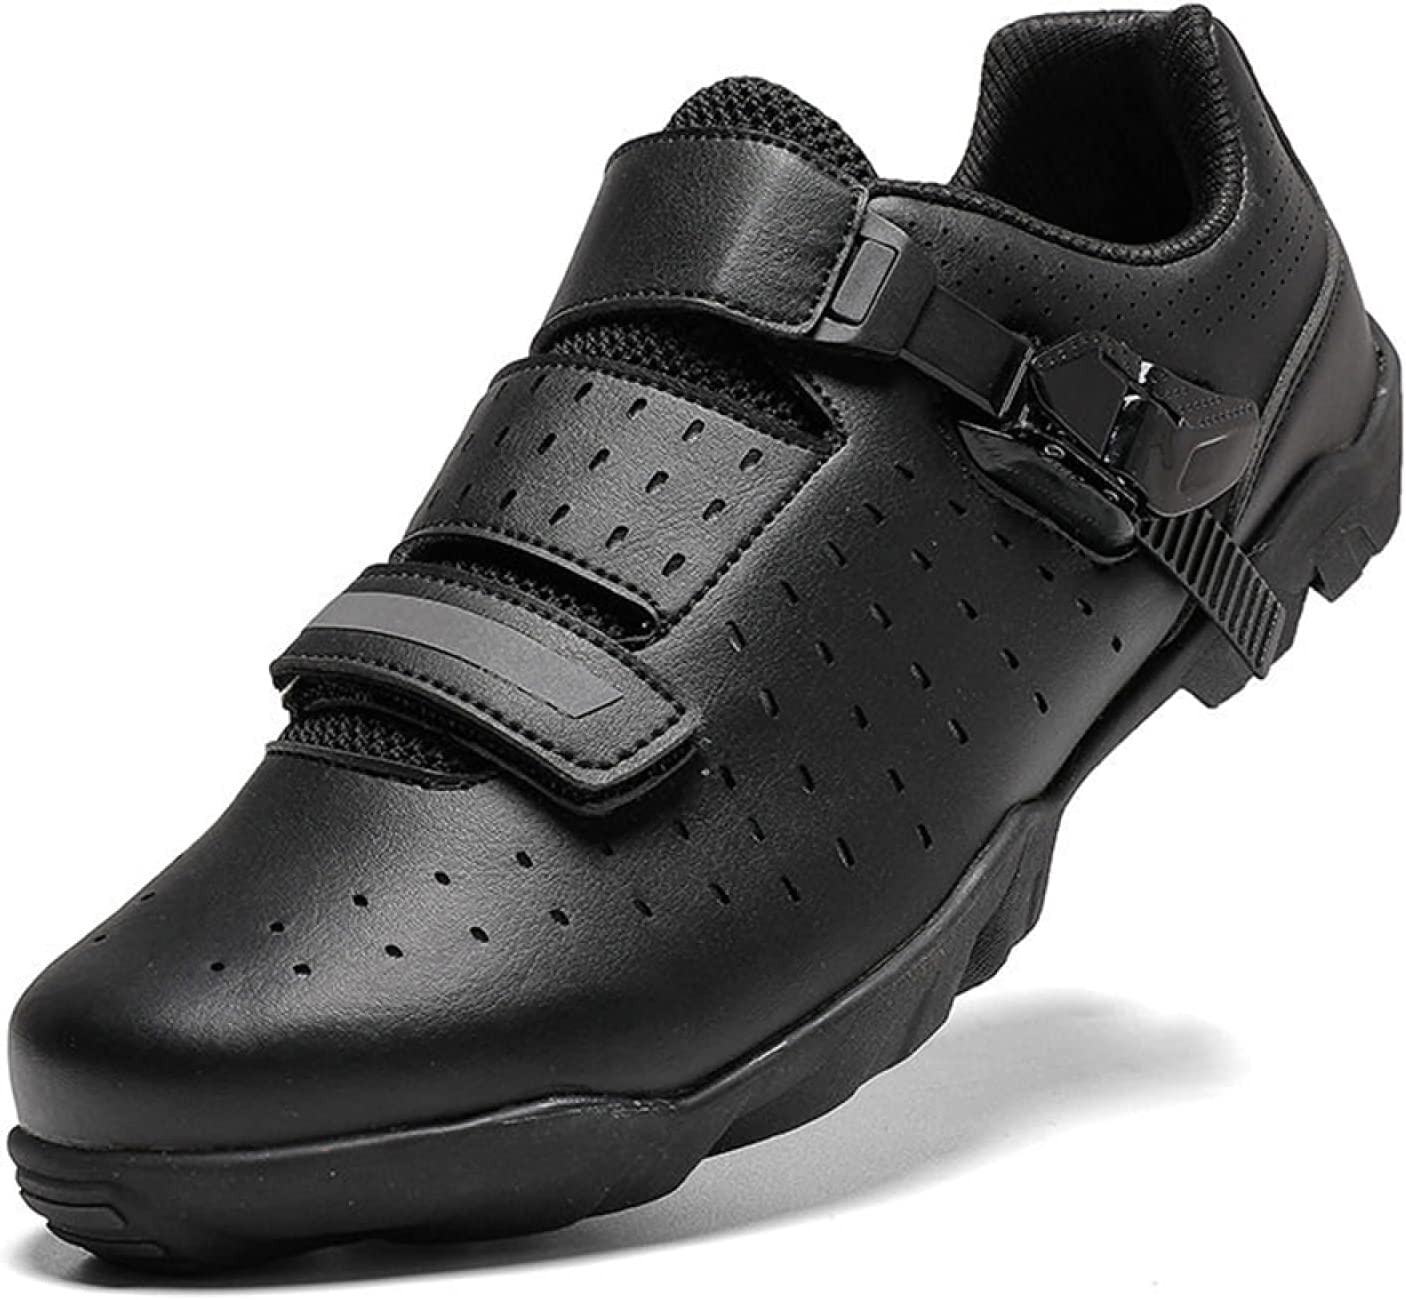 Non-Slip Cycling Shoes favorite Men and Women Spasm price Rubber Breathable Road